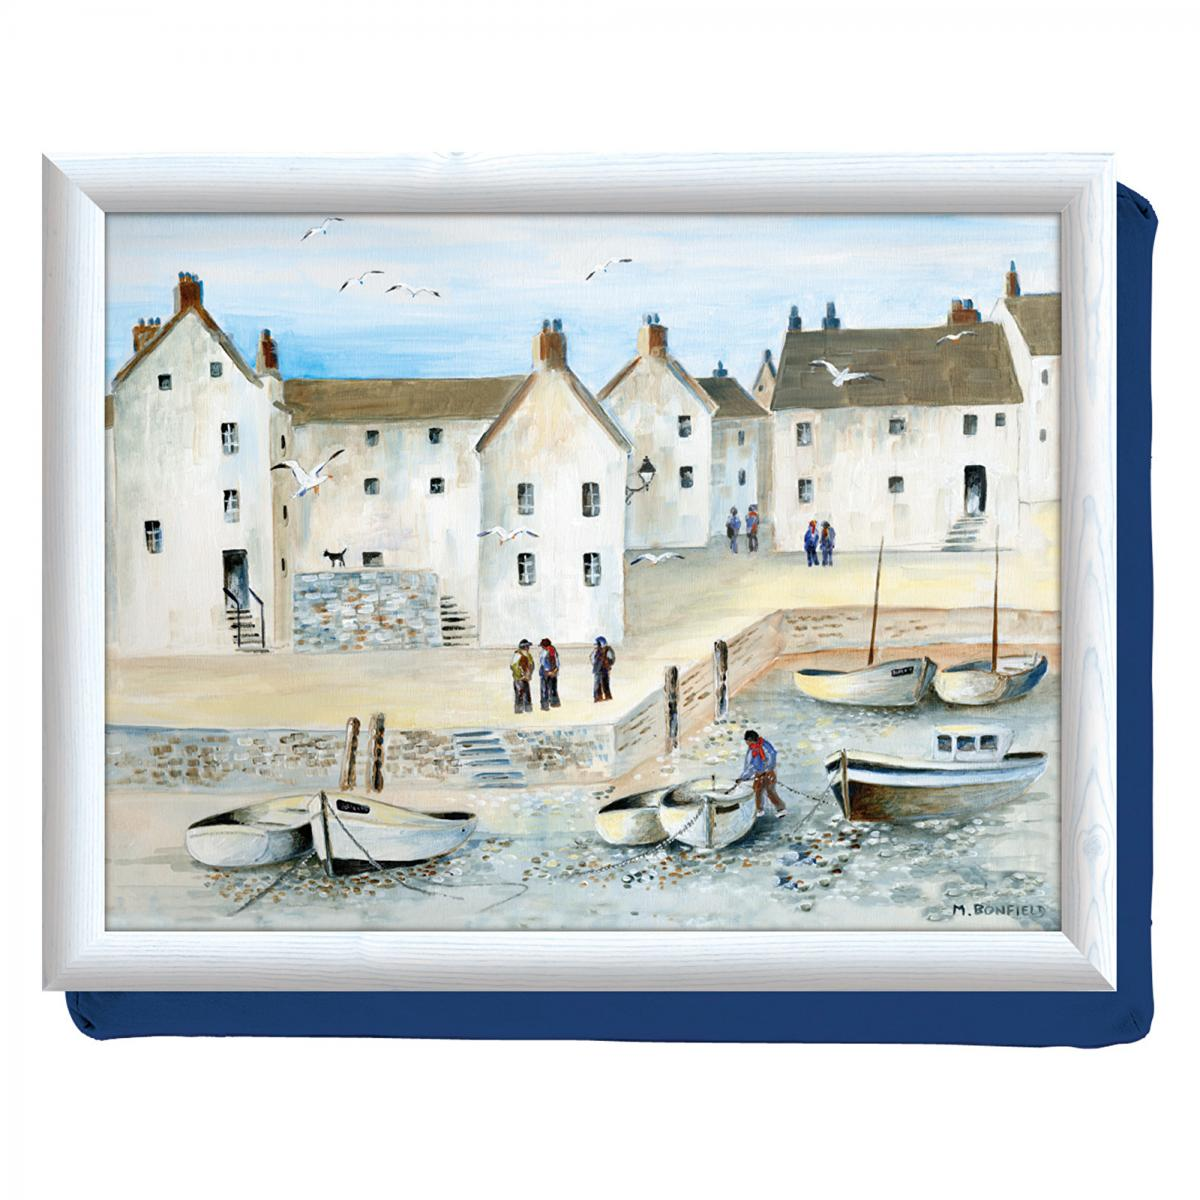 Cornish Harbour Cornish Harbour Laptray – Now Only £10.00